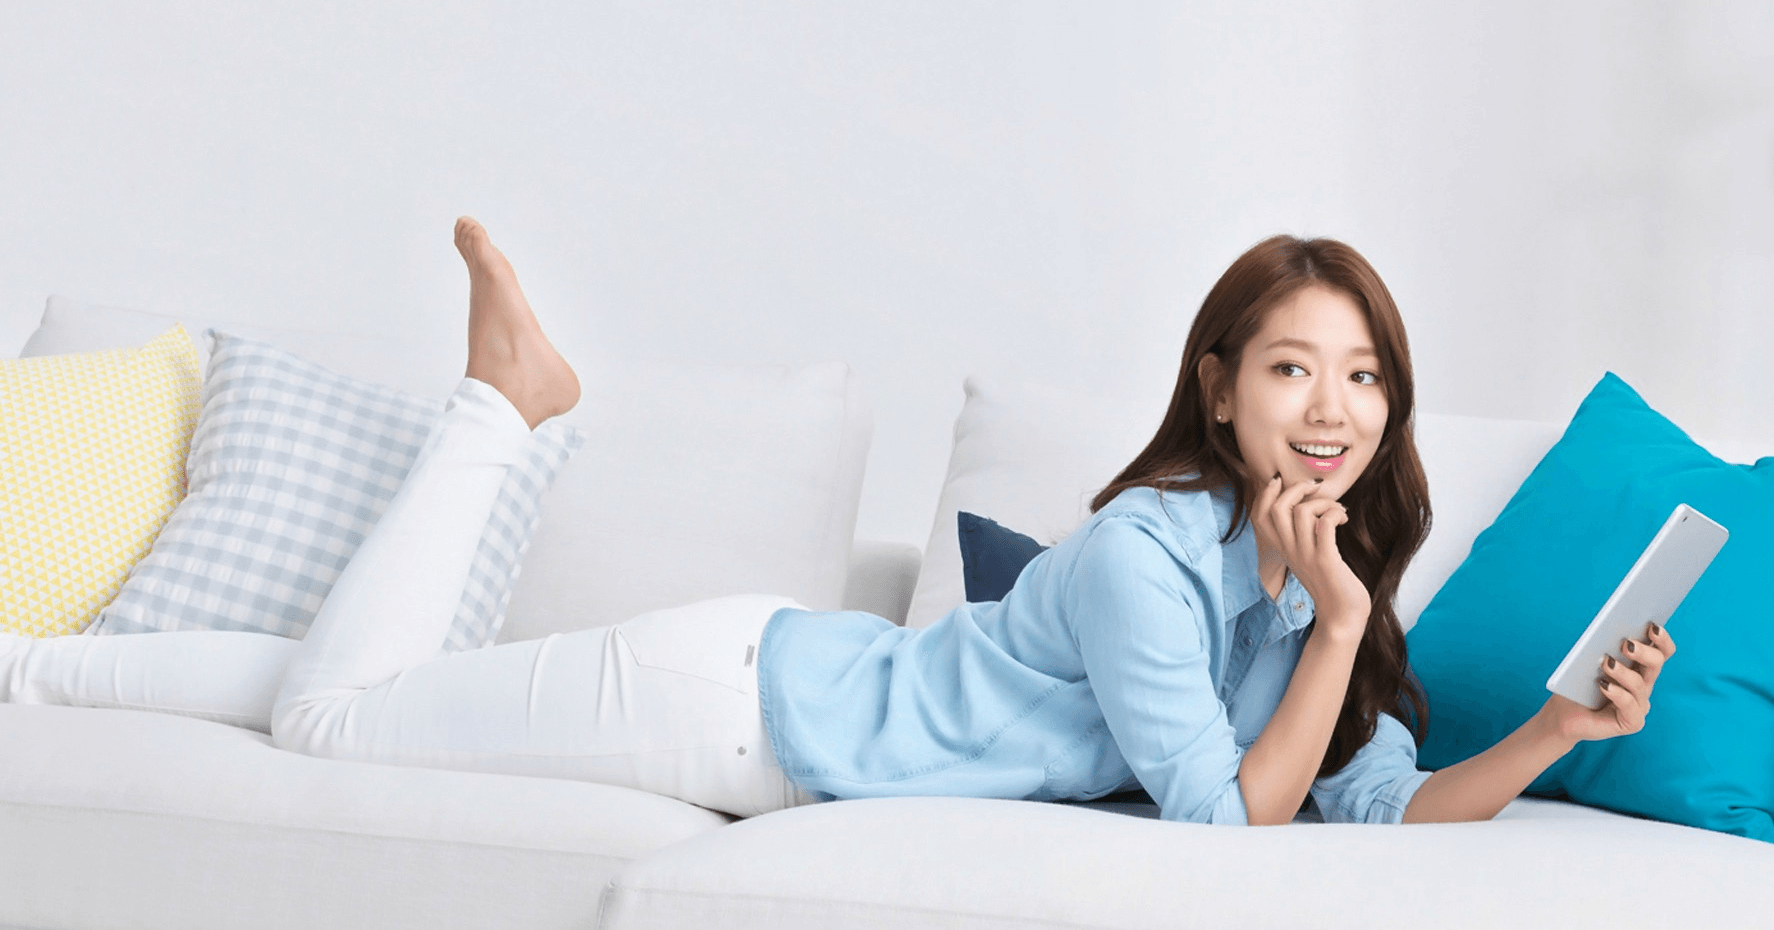 Here's How Park Shin Hye Takes Care of Her Body